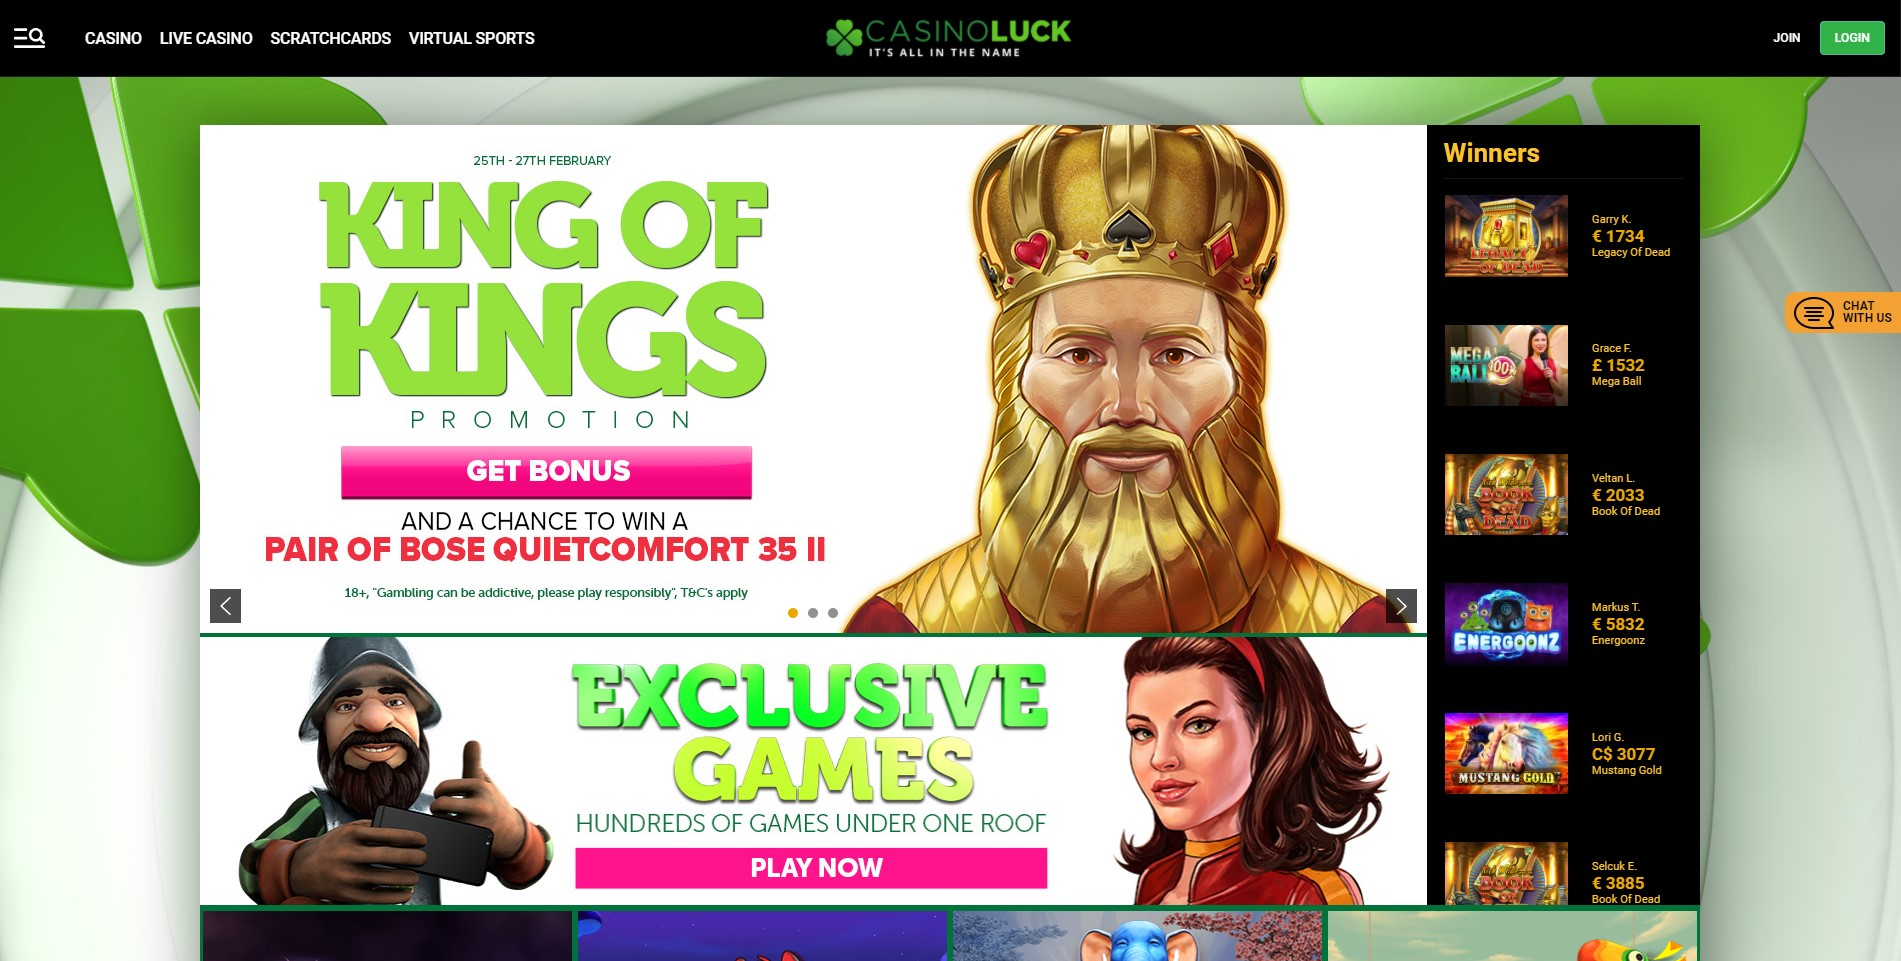 CasinoLuck Landing Page